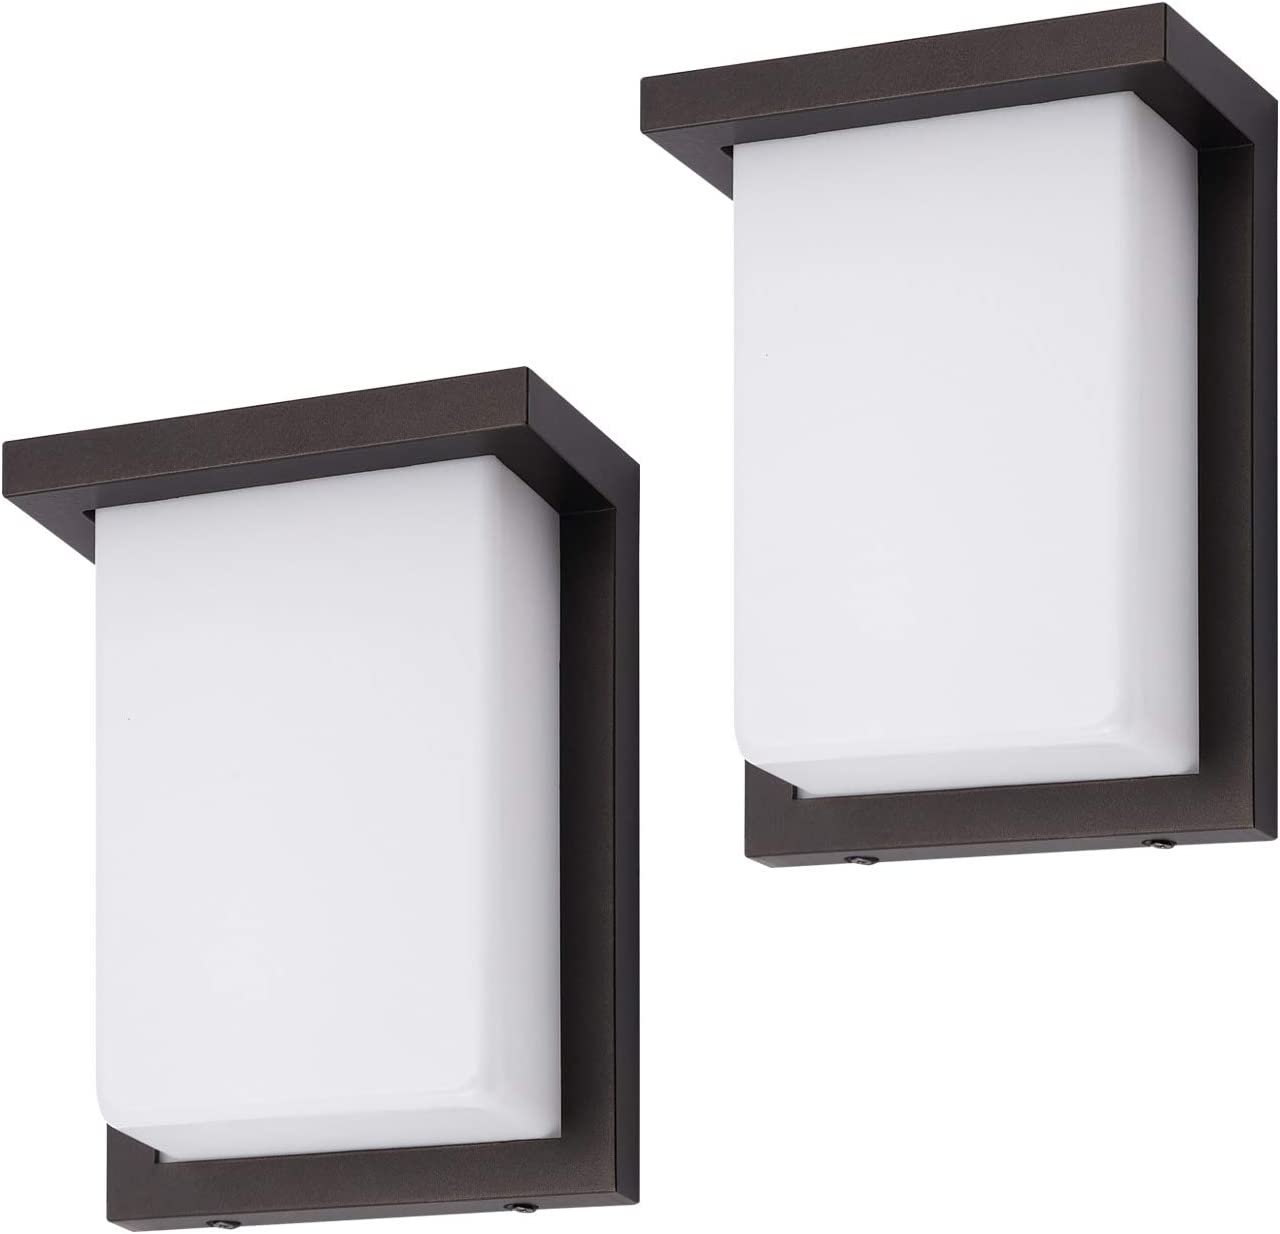 OSTWIN 2 Pack 8 Inch LED Outdoor Wall Sconce Lighting Exterior Wall Light Fixture Non-Dimmable 12W 60 Watt Repl